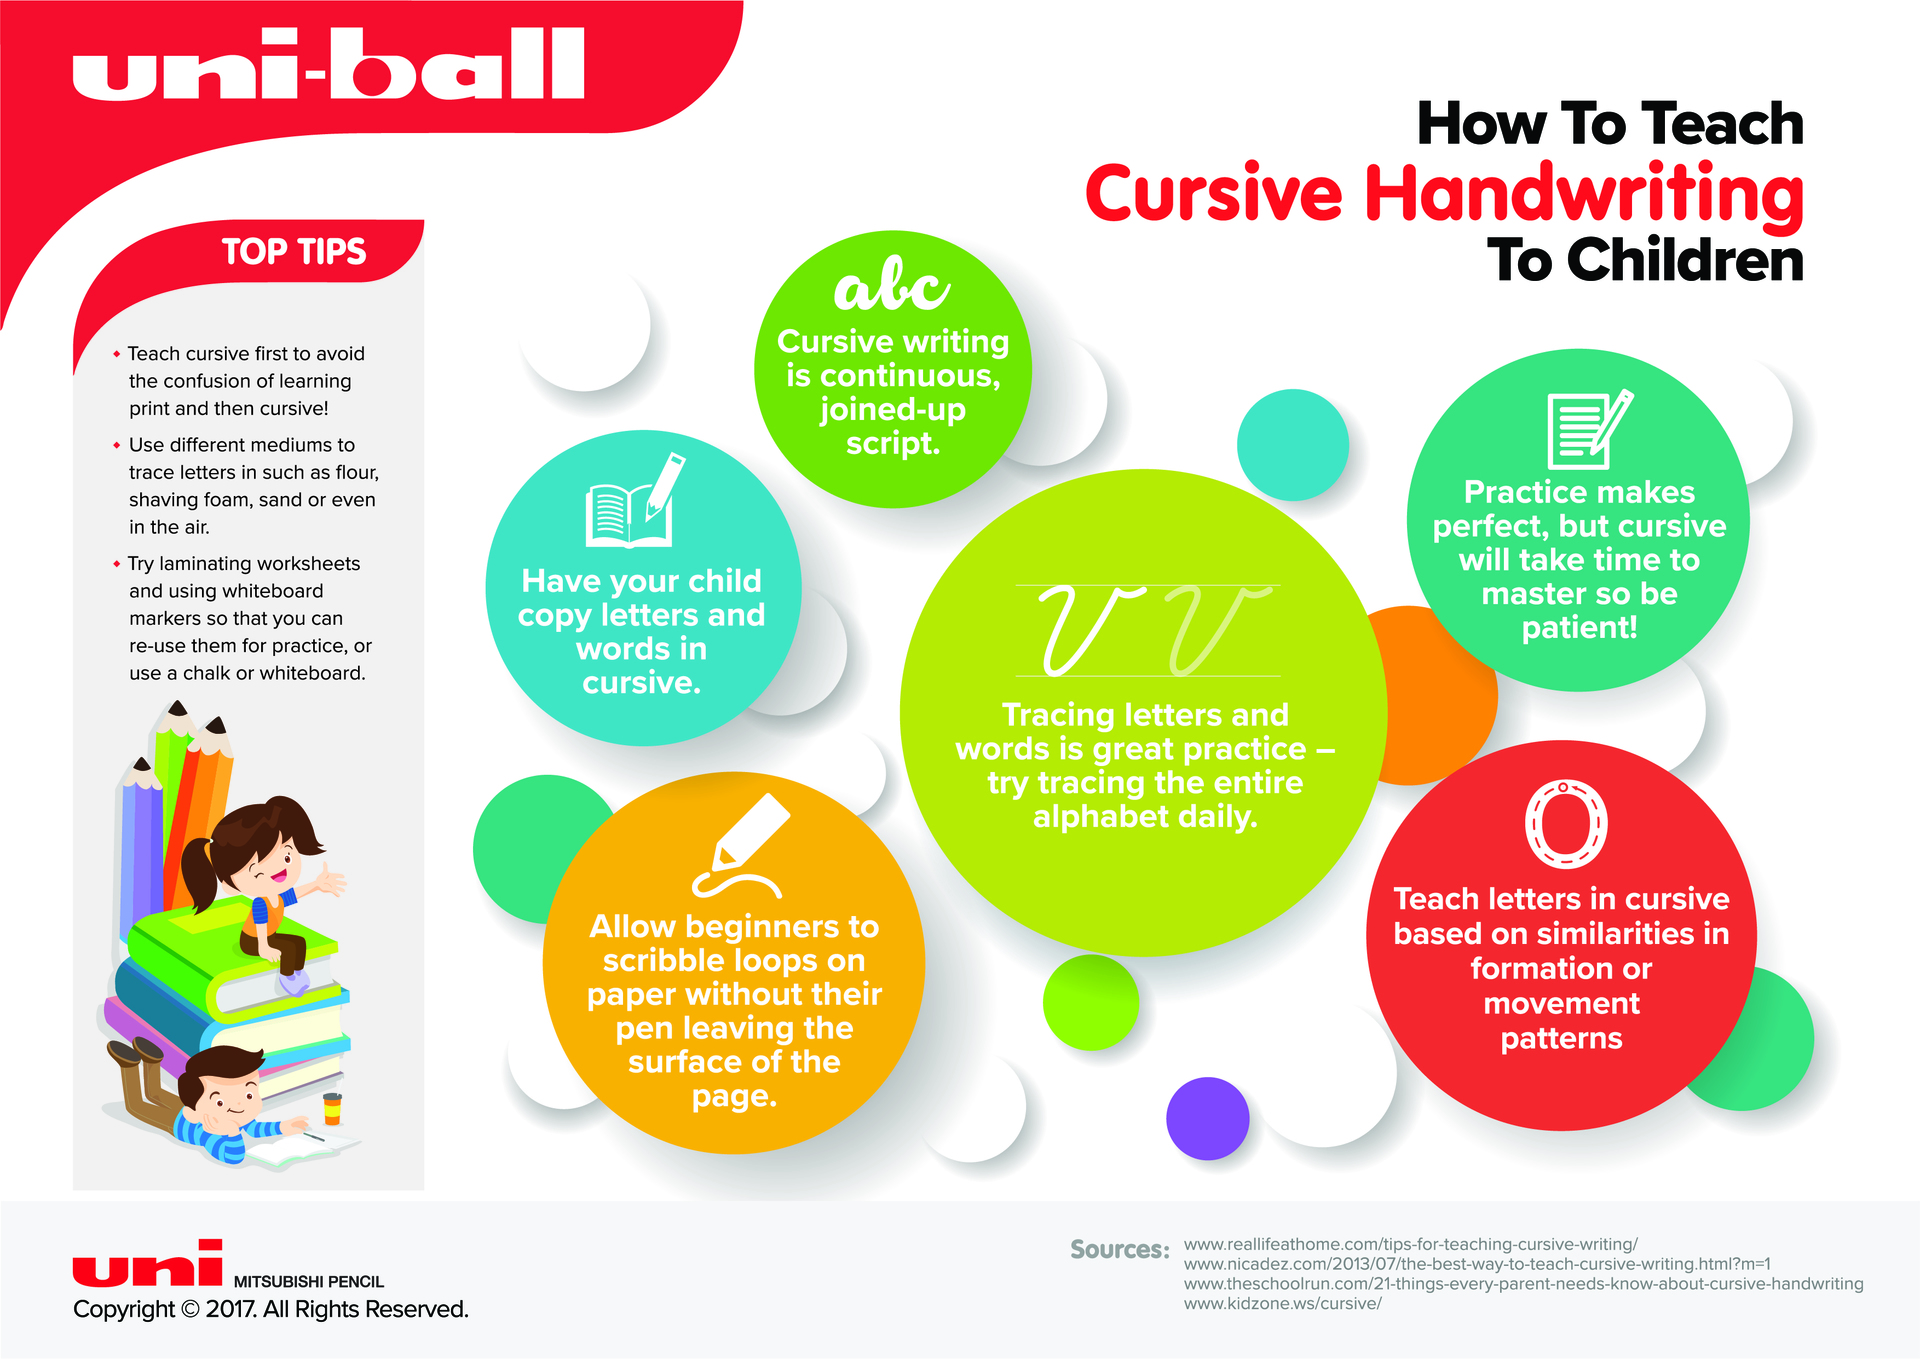 How To Teach Cursive Handwriting To Children Infographic